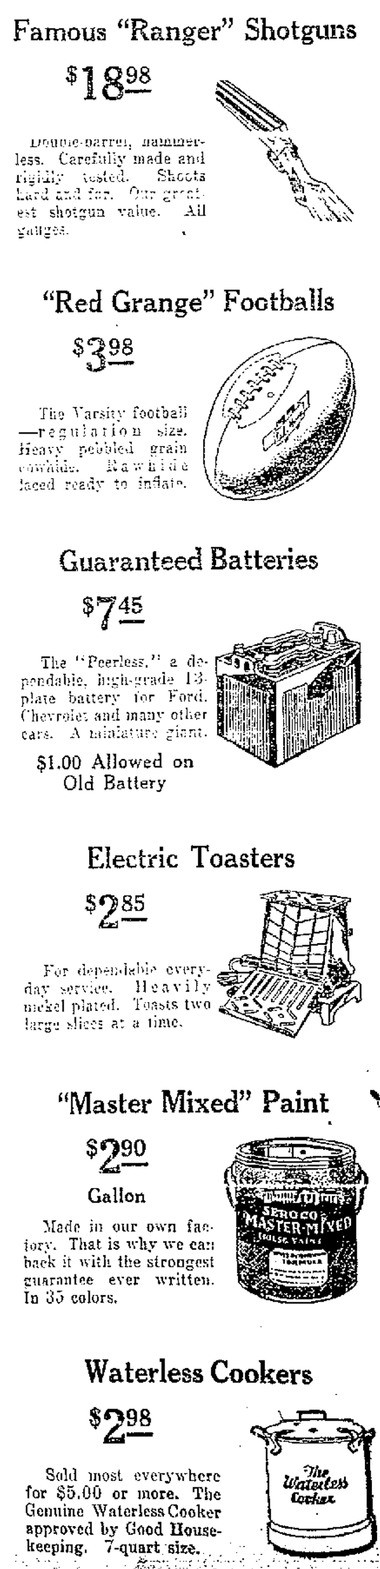 The new Sears offered shoppers quite an inventory when it opened on Oct. 3, 1929. Shotguns, Red Grange footballs, toasters, paint and waterless cookers were just some of the items on sale.